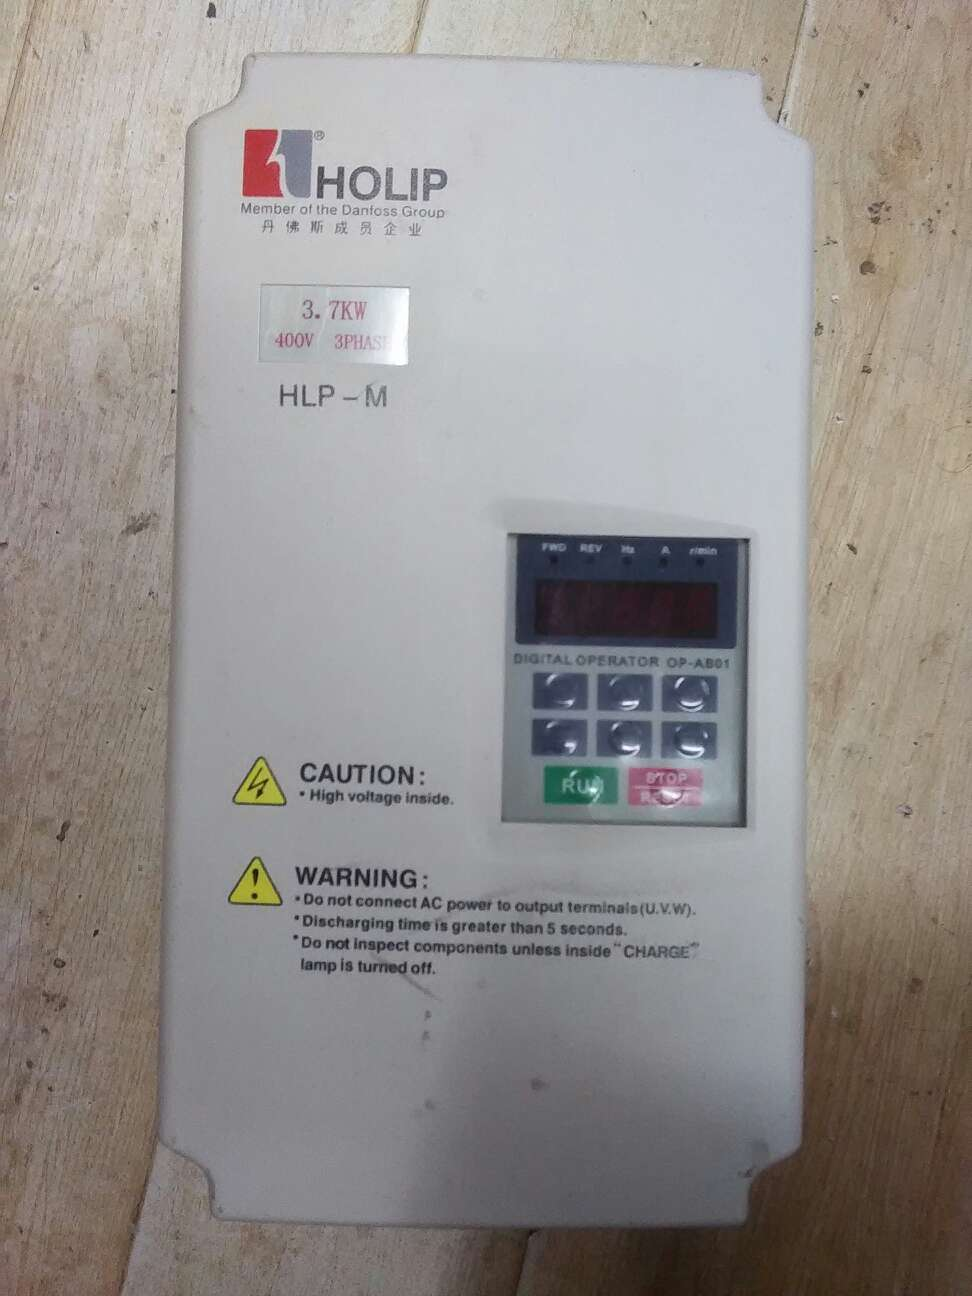 hight resolution of vfd holip hlp m03d743b grinder inverter 3 7kw 4kw three phase motor speed controller 380v igbt in inverters converters from home improvement on